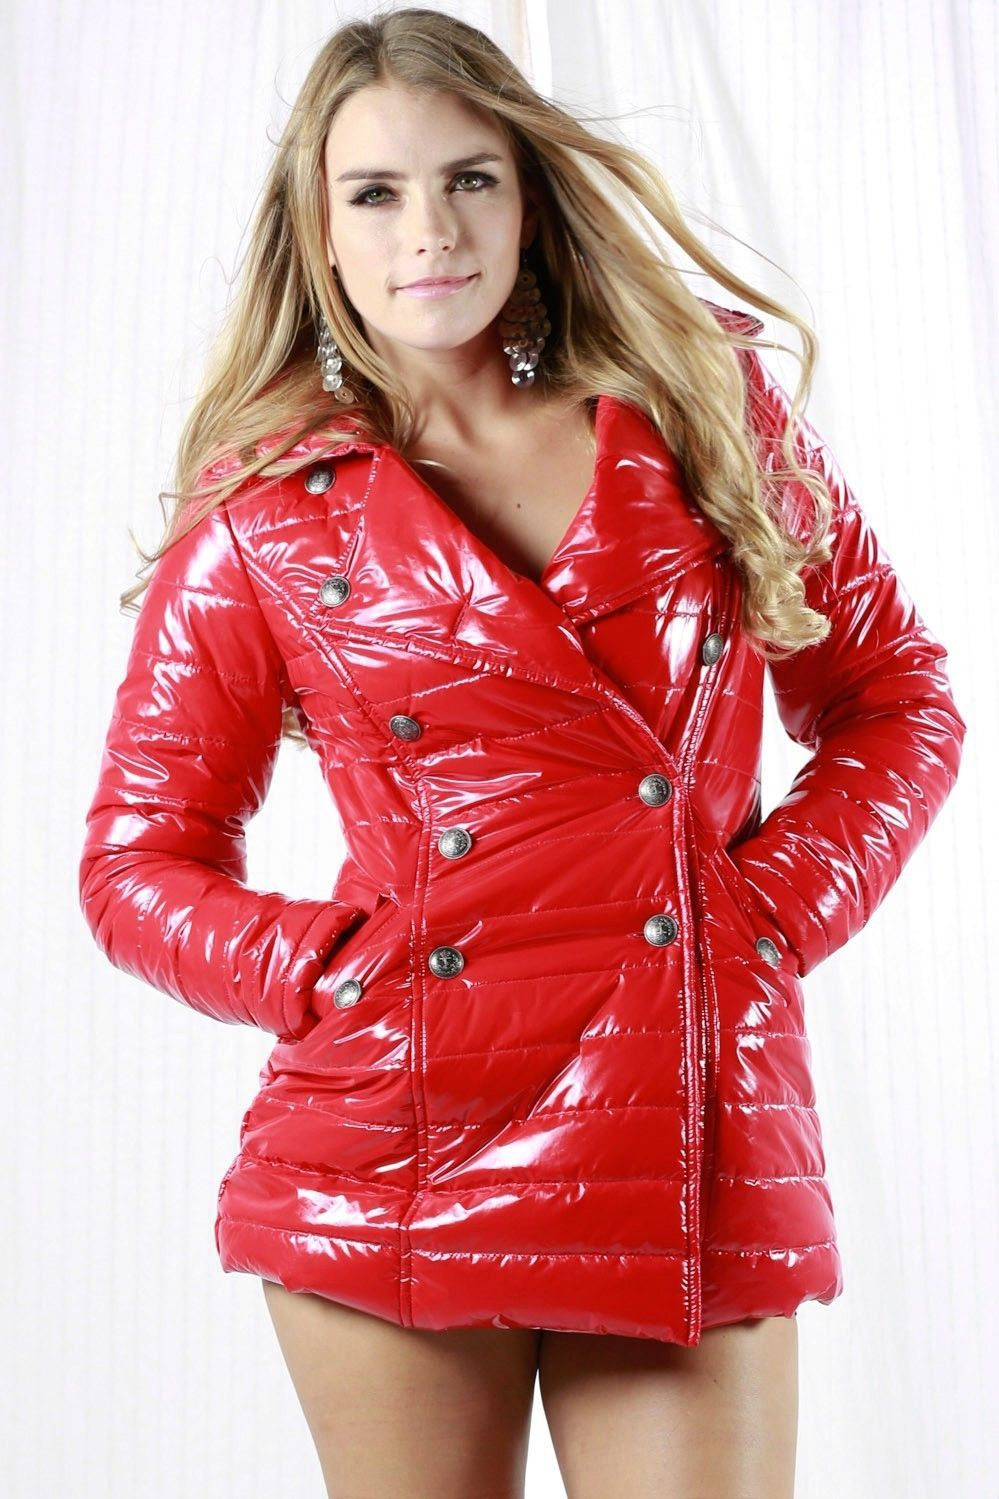 Athena massey red alert pictures to pin on pinterest - Shiny Red Down